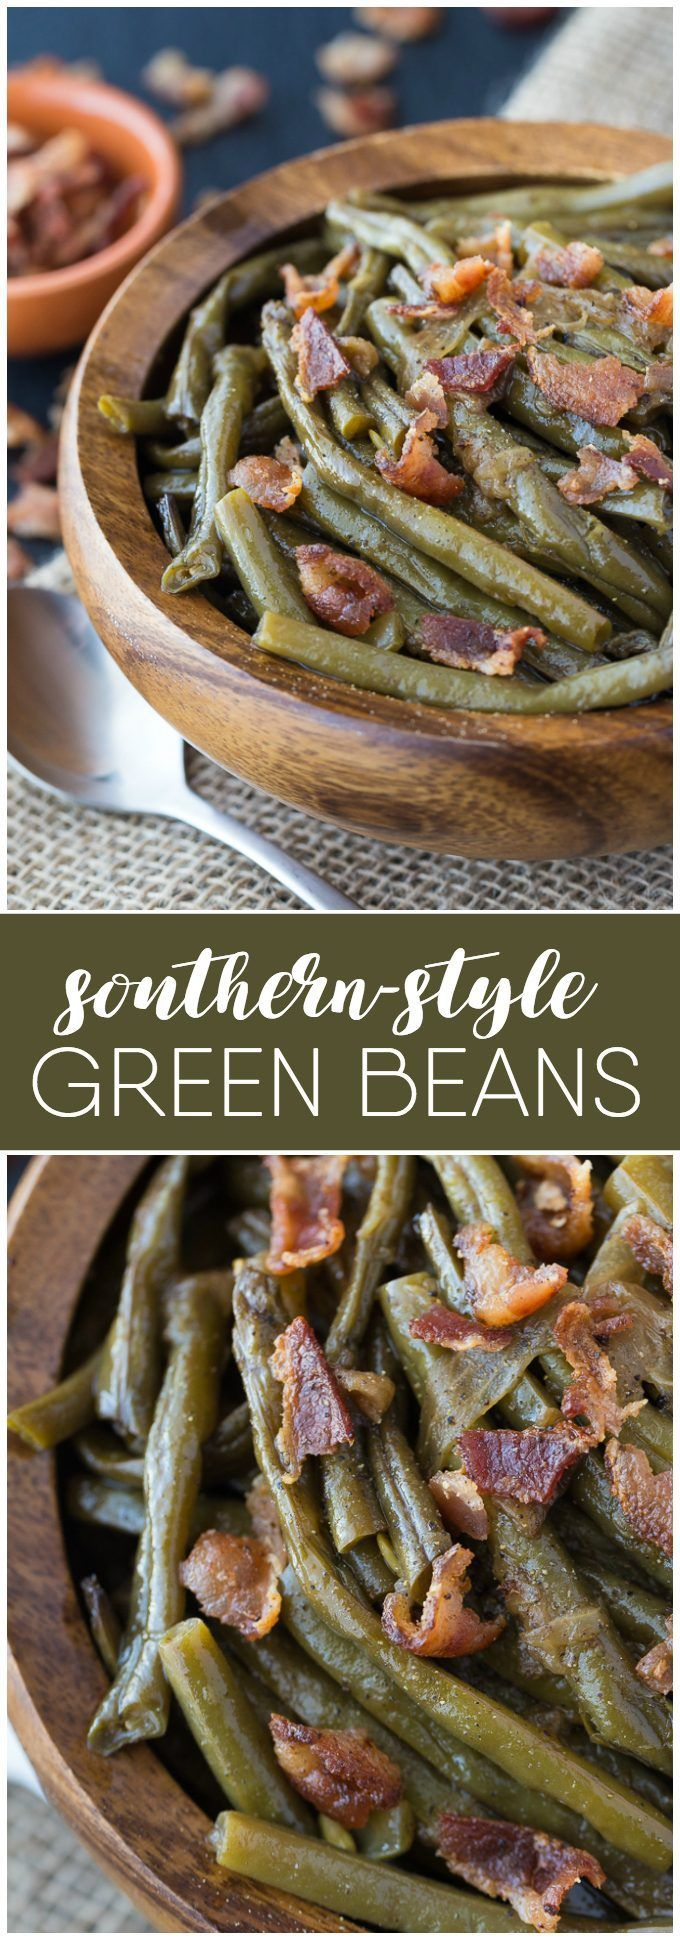 Southern Style Green Beans - A simple slow cooker recipe made with beans, bacon and onions! (Paleo Recipes Slow Cooker)